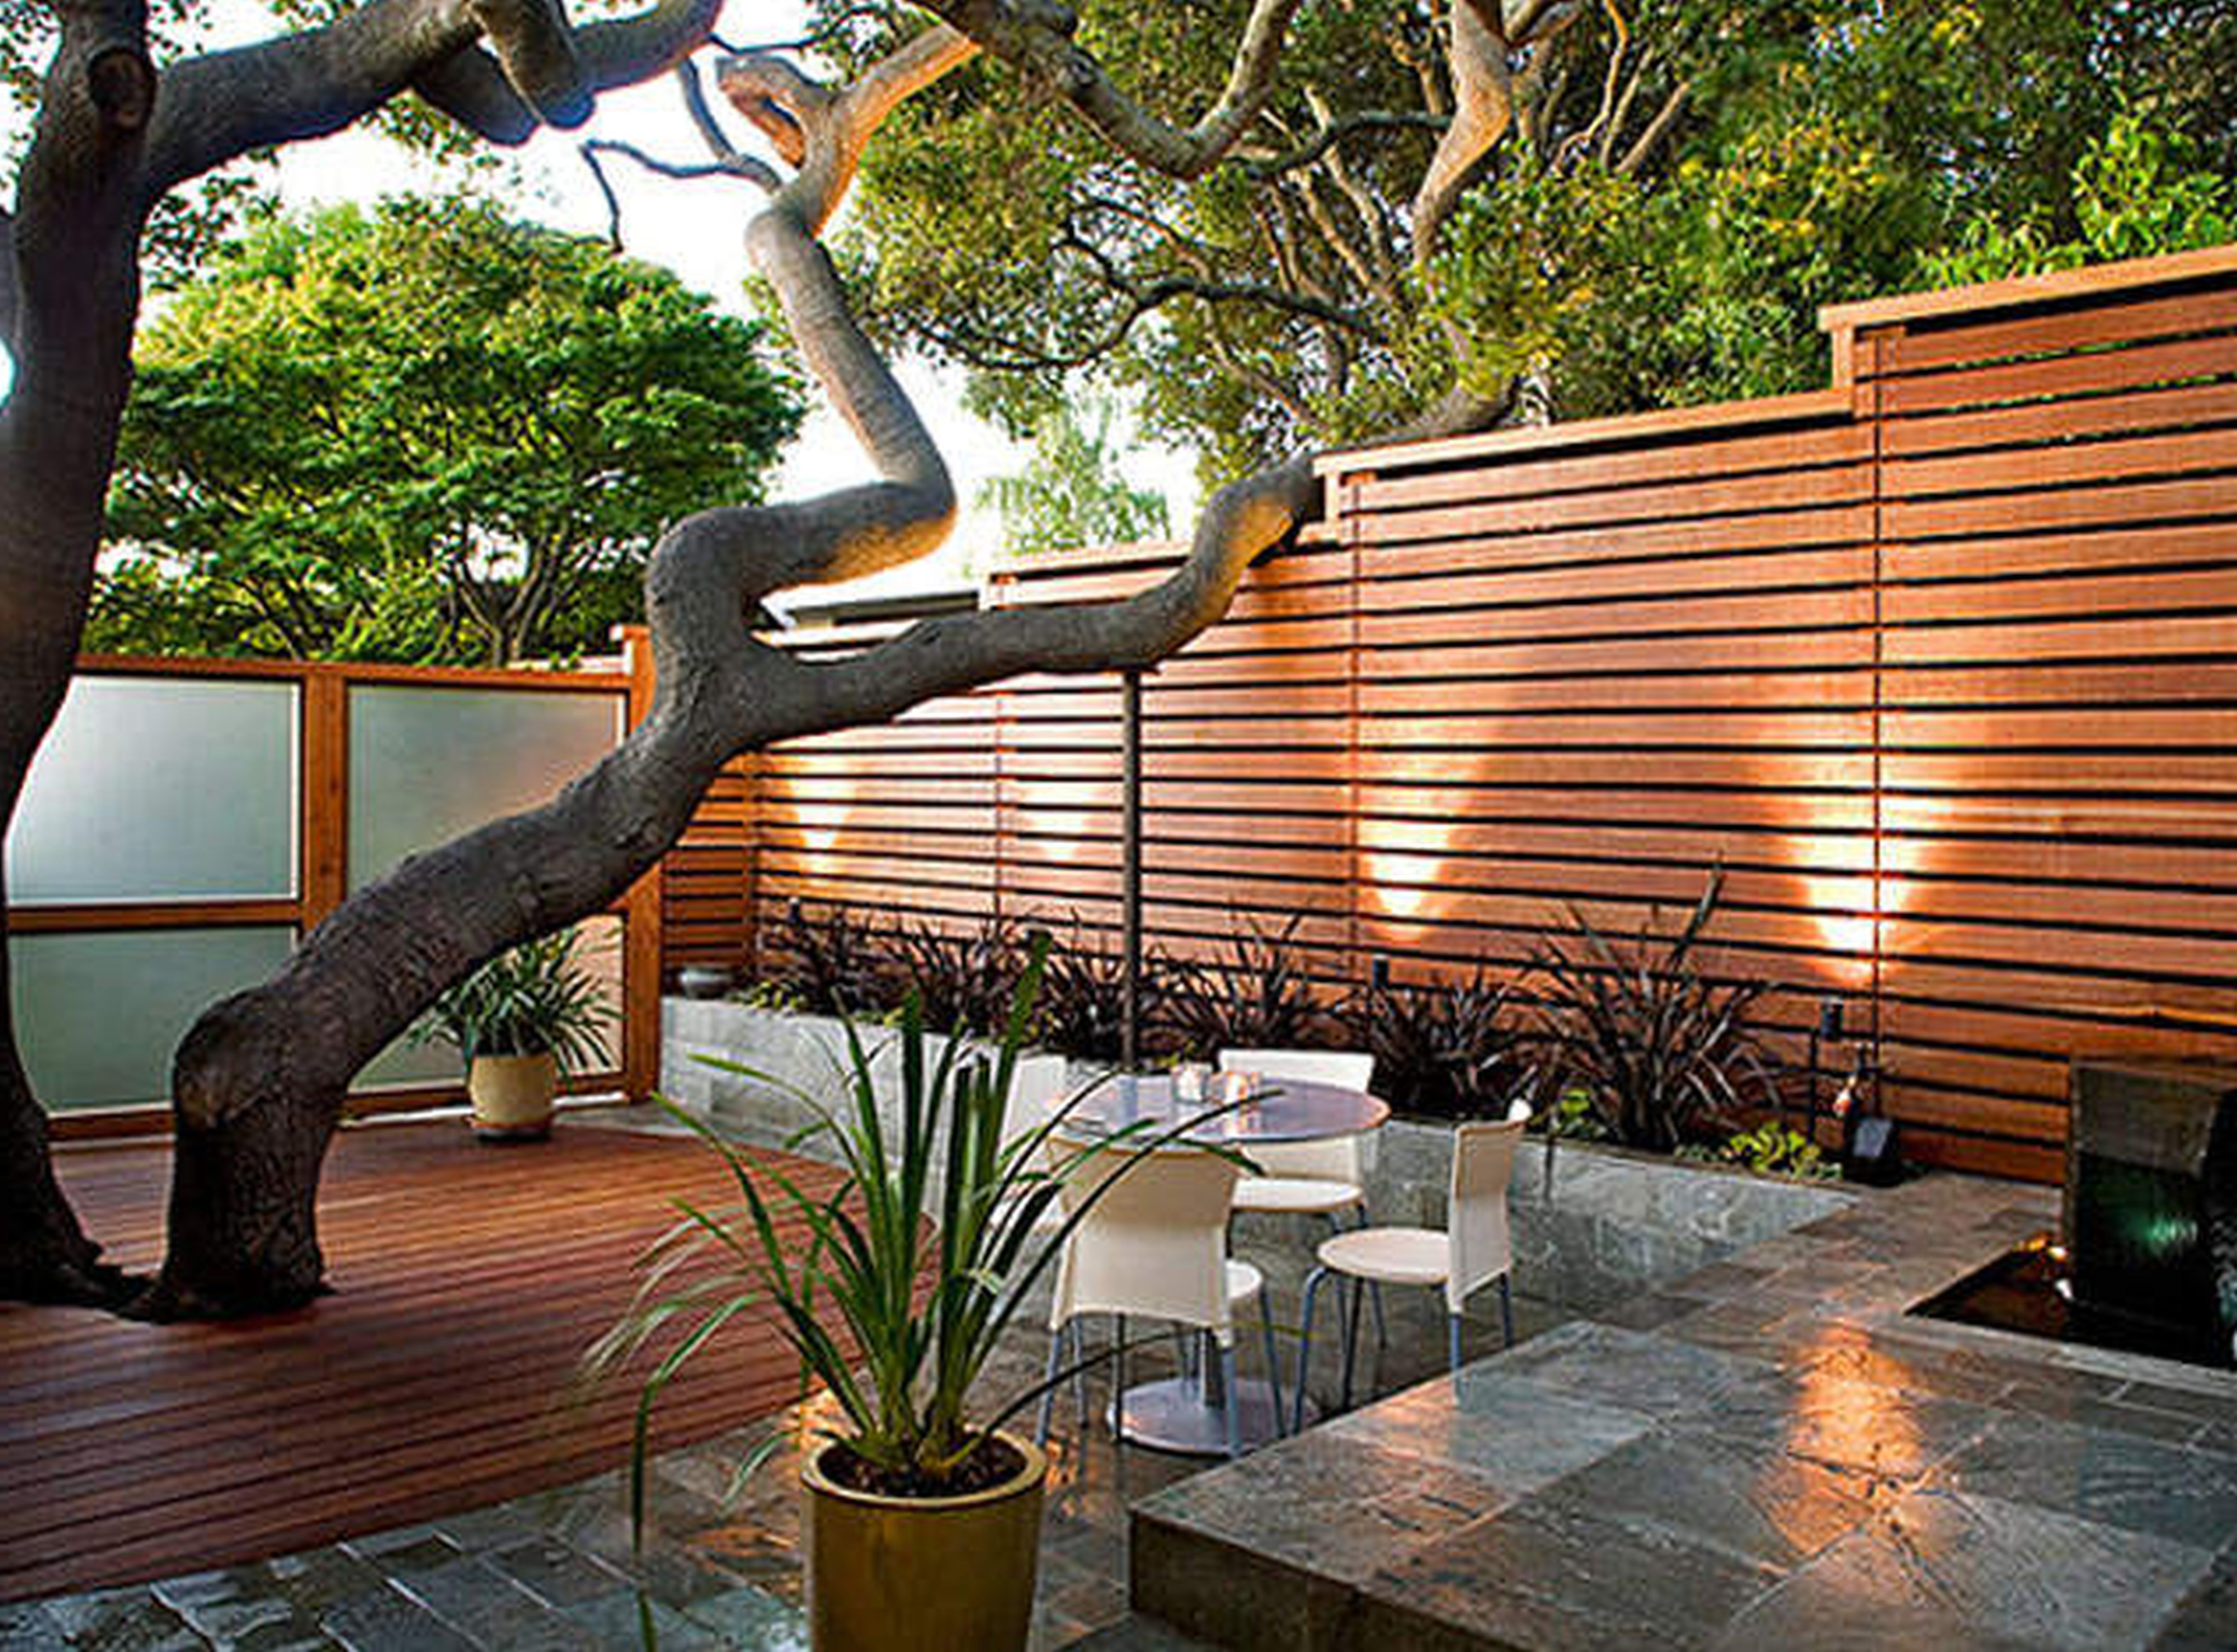 Small front yard landscaping ideas landscaping ideas for Modern front garden ideas uk